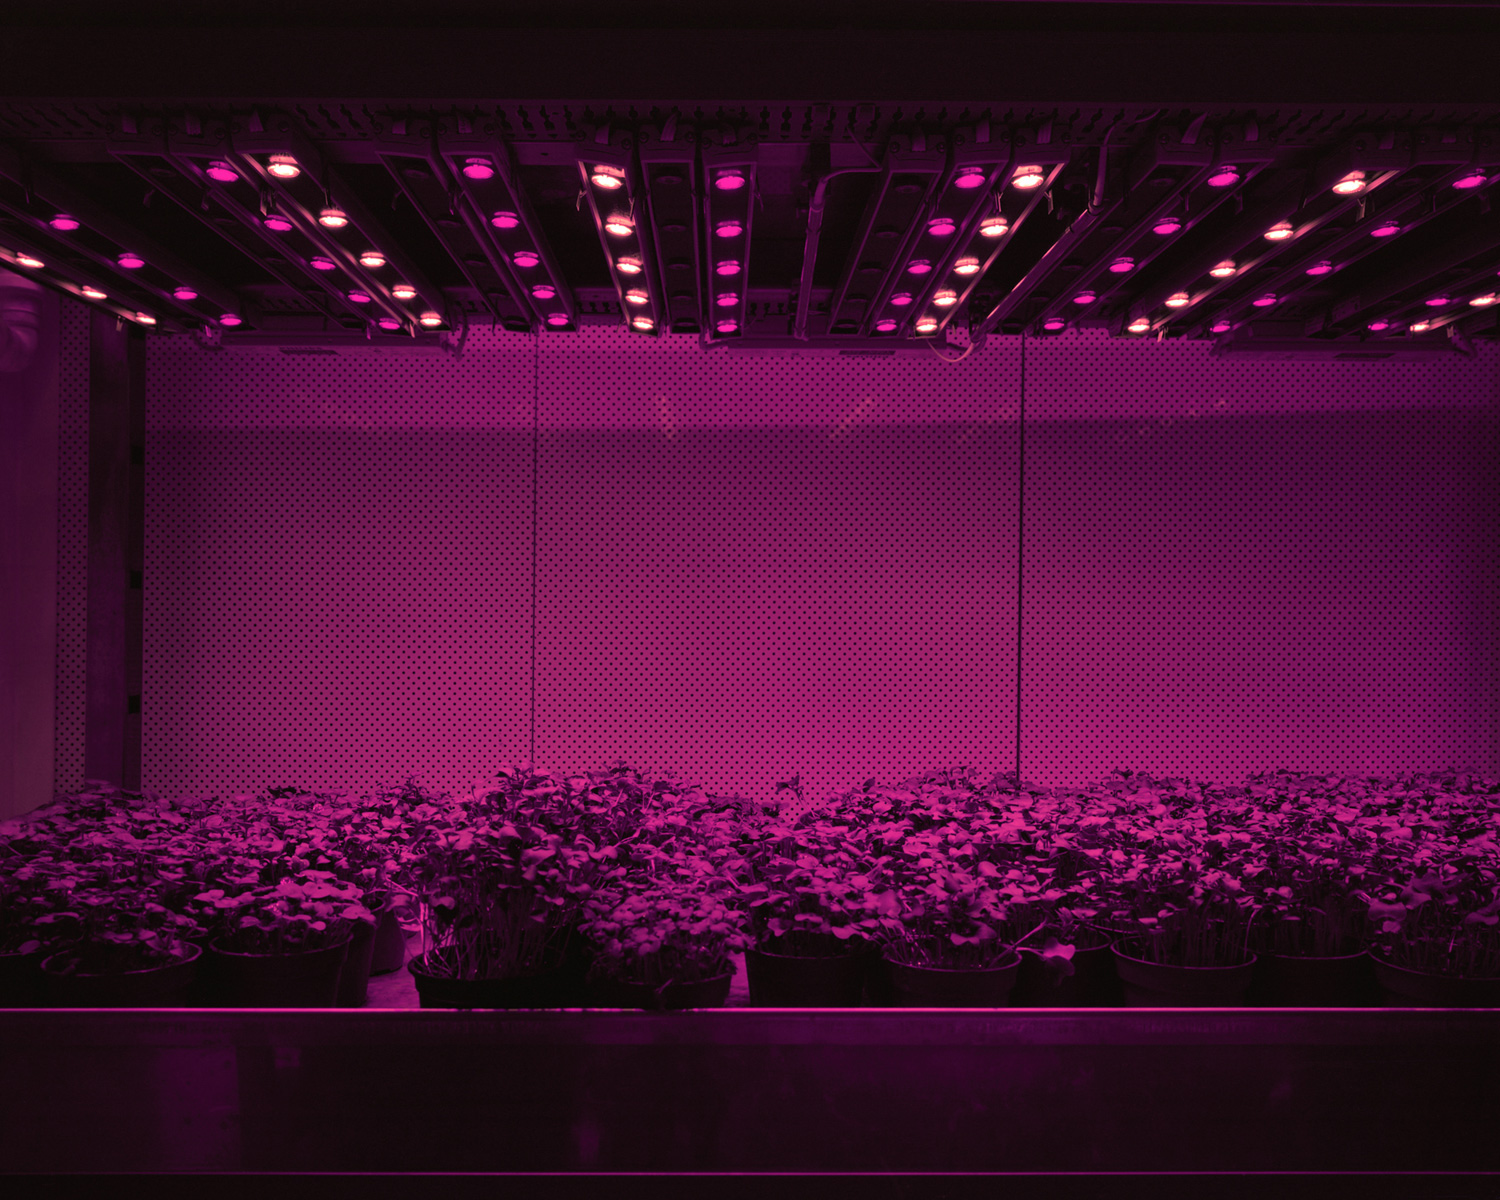 Cress, 2011  Cress, tomatoes, cucumbers, or lettuce are grown in closed systems just with LED lights. There is no sunlight and no direct exchange of air with the outside. Day and night, summer and winter stop existing. Humans are able to determine the shape, taste and colour of plants and fruits. They can be grown anywhere from the desert to inside of restaurants and supermarkets.